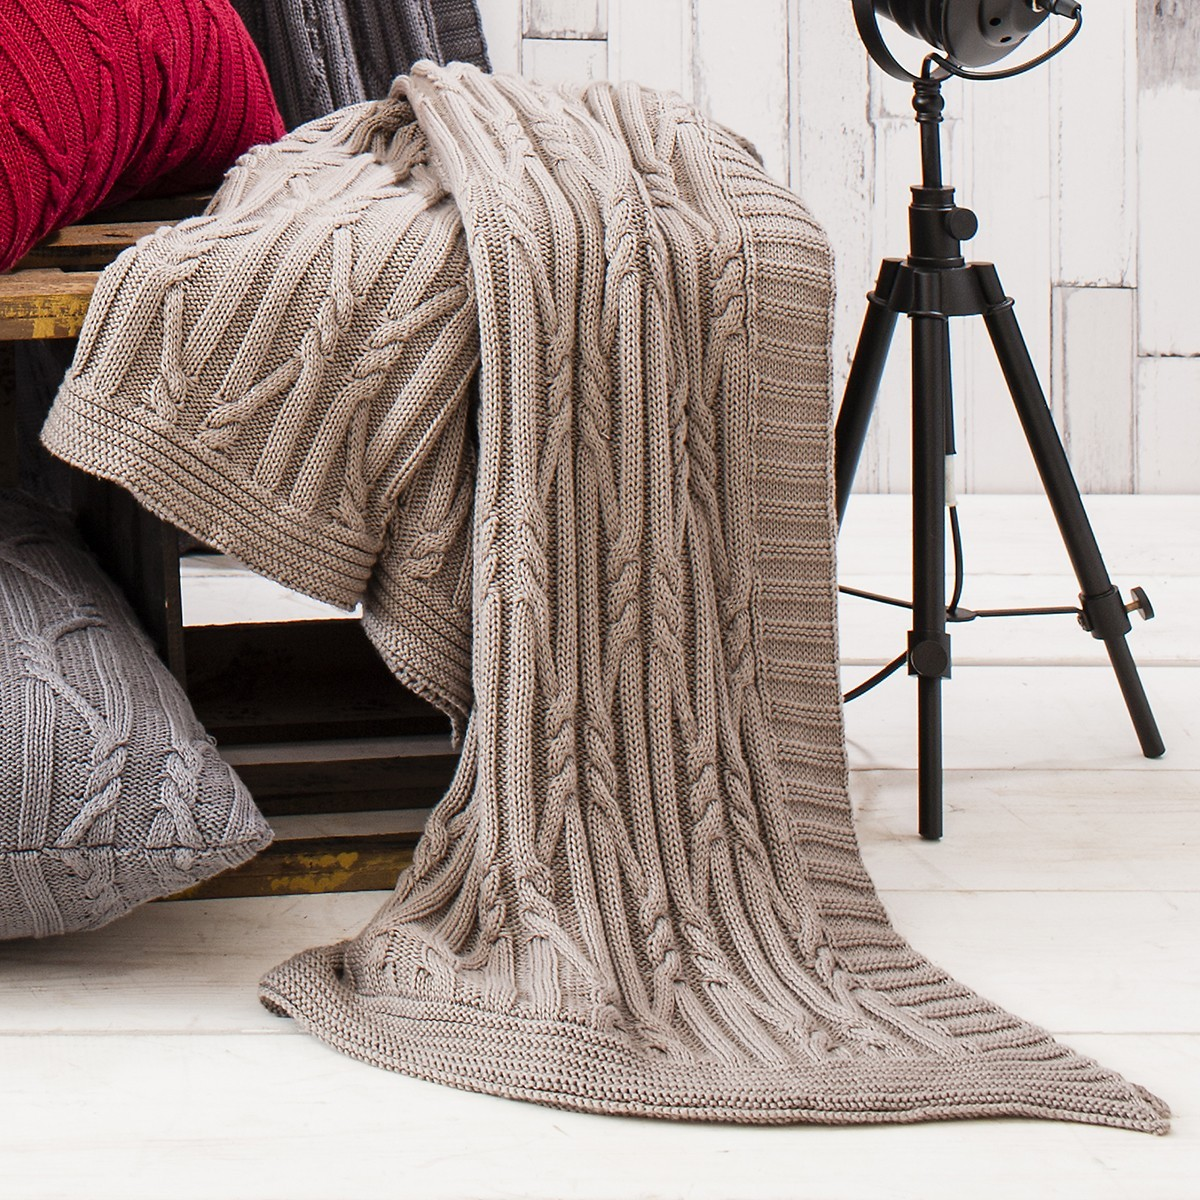 Arran Knitted Cotton Throw, Taupe